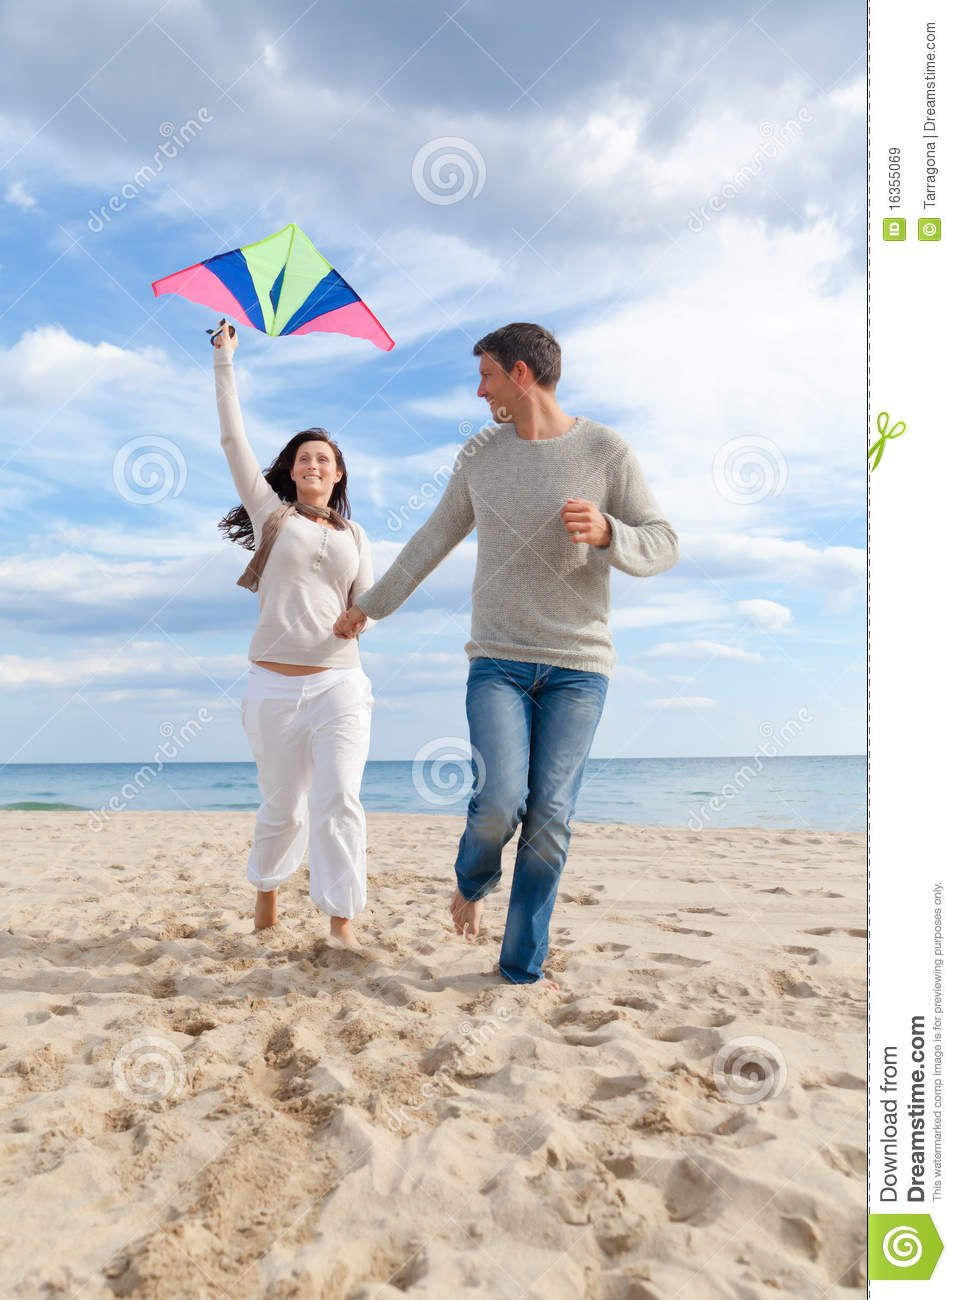 Go fly a kite.  The beach is perfect gor a picnic too